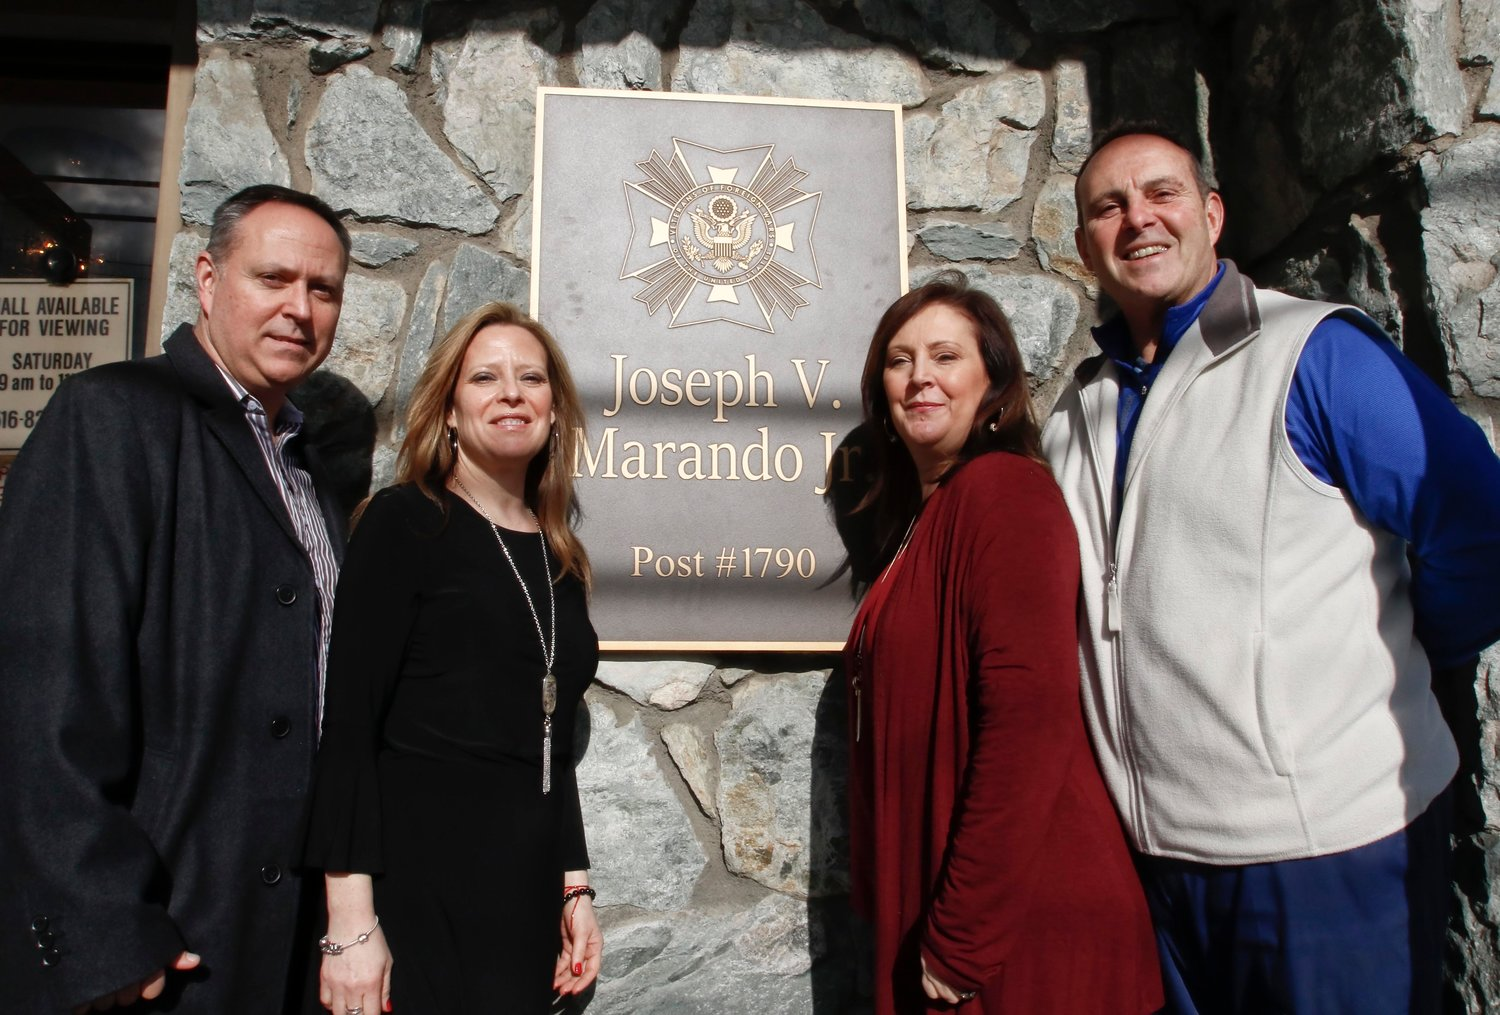 Last Sunday, four of Joseph Marando Jr.'s children — from left, William Marando, Benedetta Ginsberg, Tina Santos and Joseph Marando — unveiled a plaque at the Veterans of Foreign Wars Post No. 1790's building on Merrick Road in memory of the late post commander.